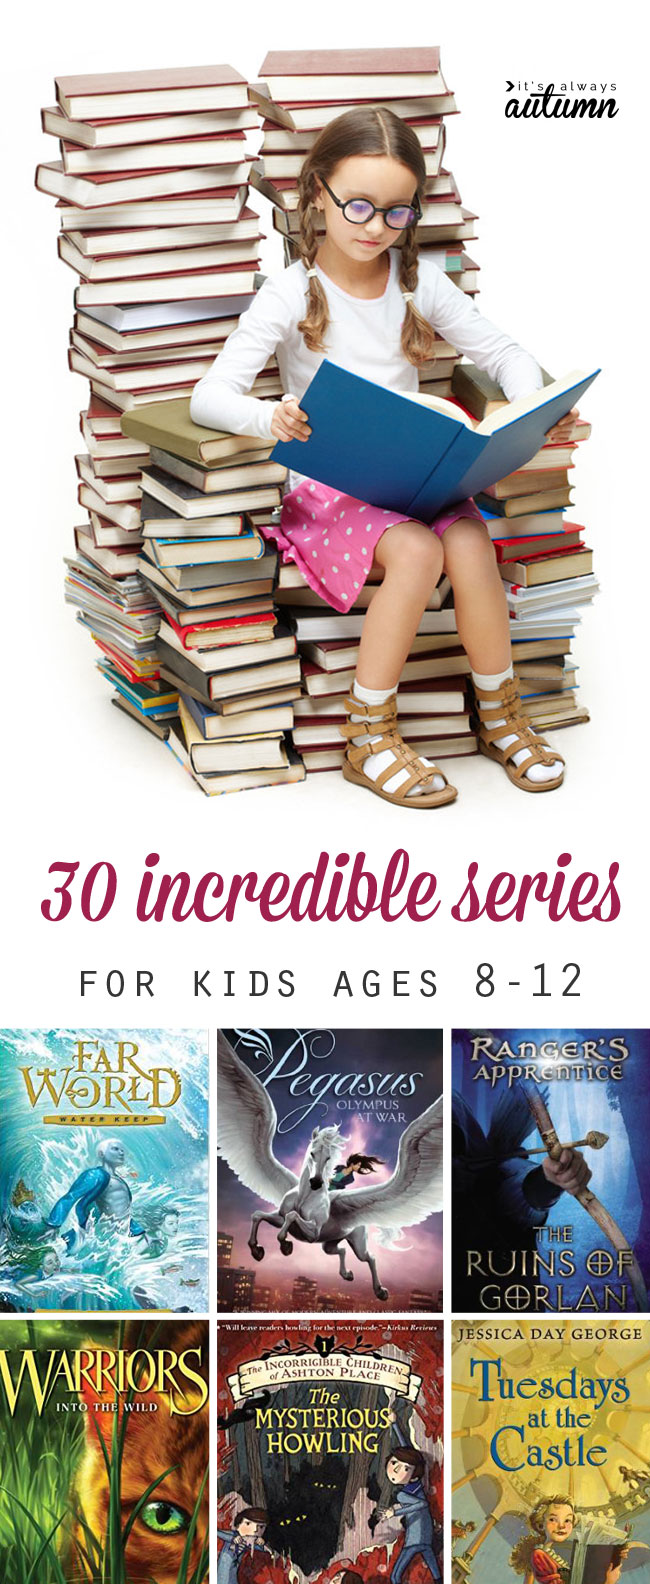 This is a great list of fantastic book series for kids ages 8-12. great books to put on the summer reading list!